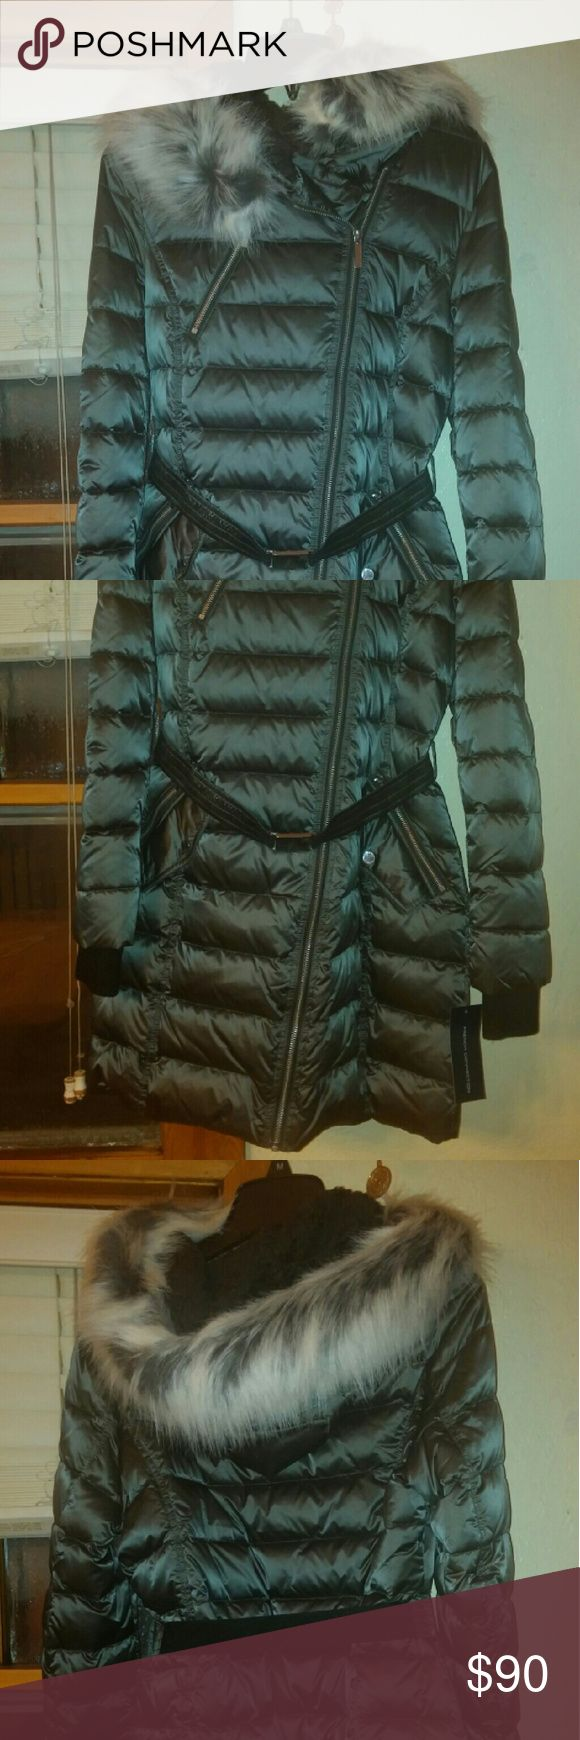 """French connection hooded puffer coat Brand new, chest 20"""", sleeves 26"""", top to hem 33"""". Gunmetal. French Connection Jackets & Coats Puffers"""